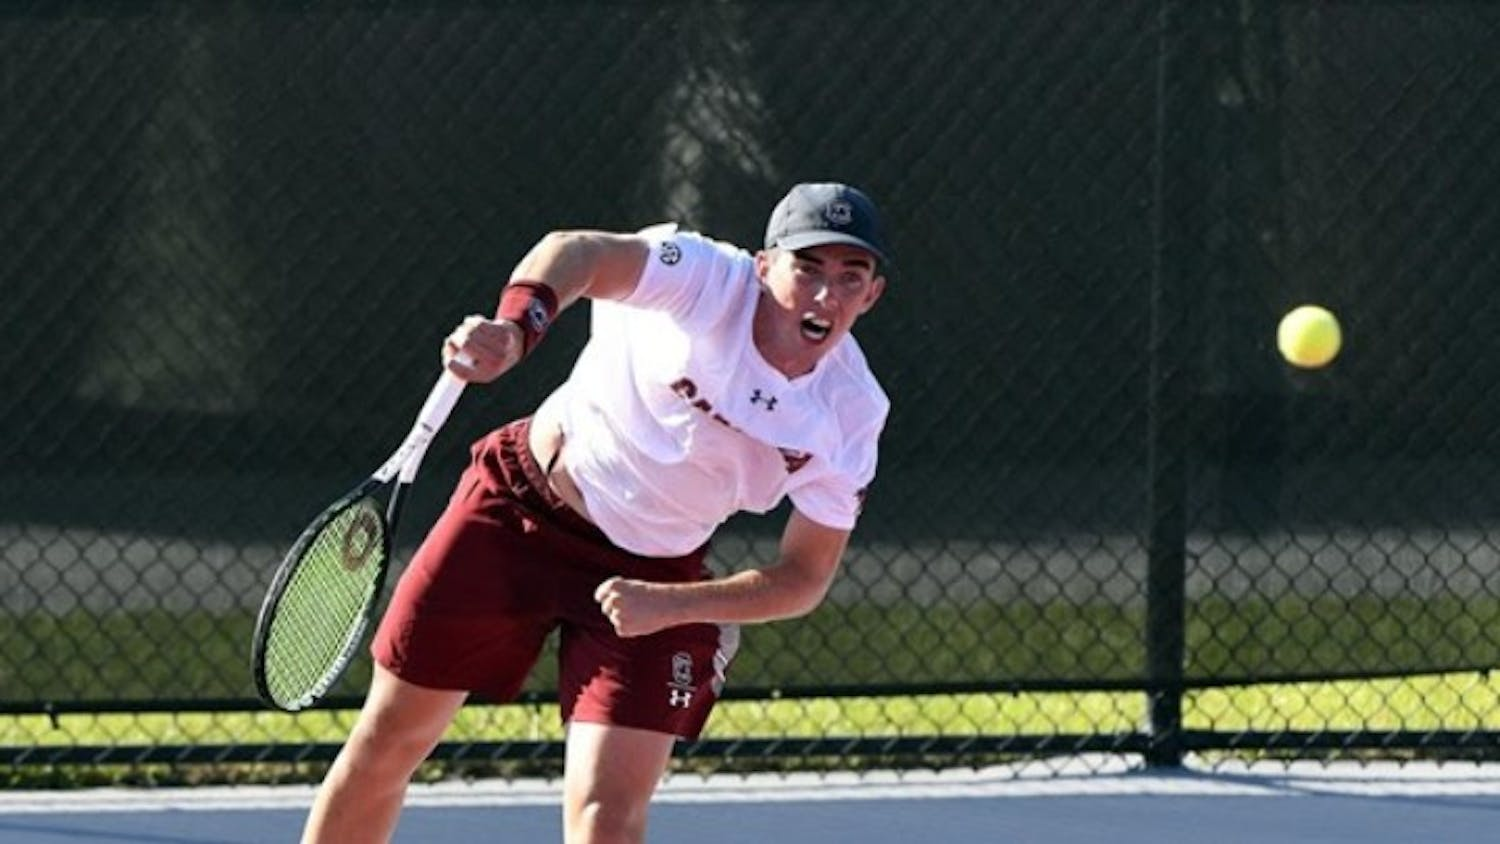 Freshman Connor Thomson serves in South Carolina's loss to #3 Tennessee.